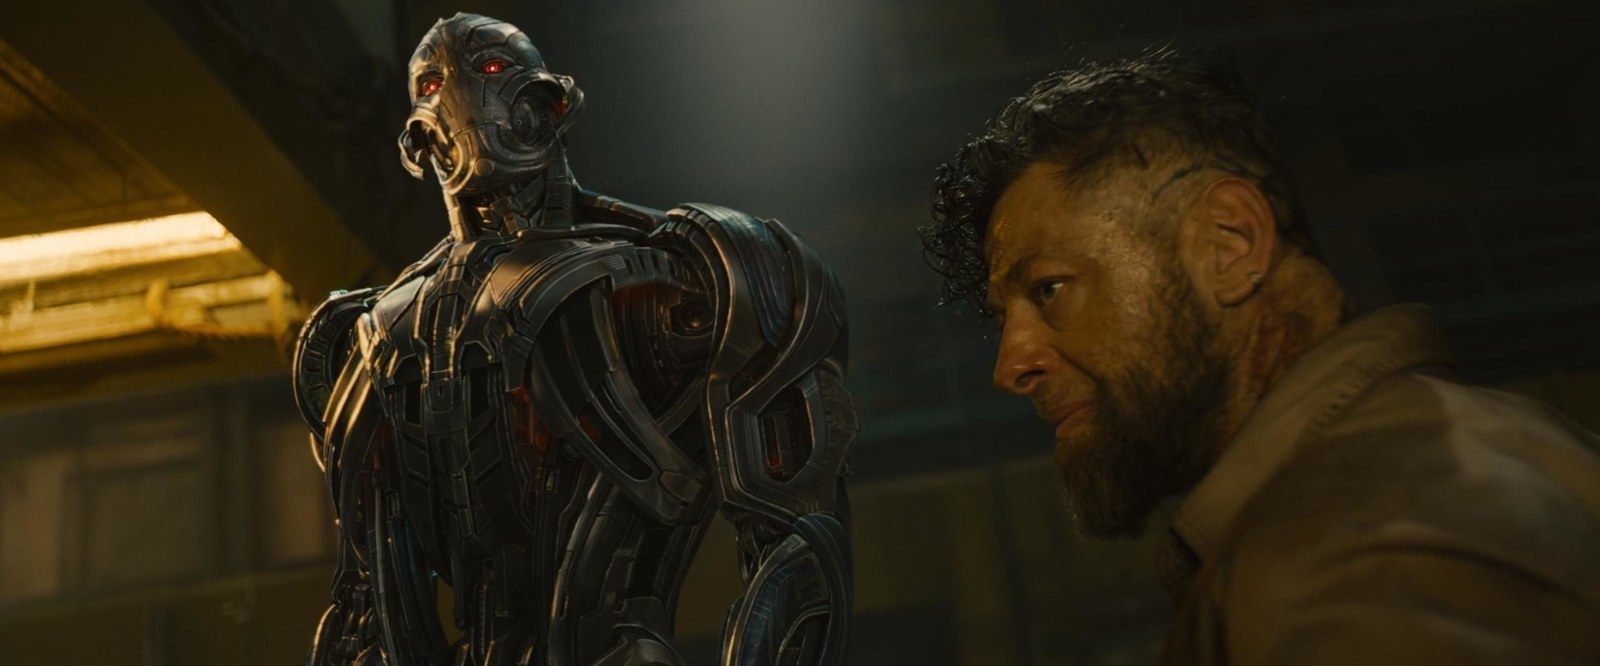 We've already met the arms dealer Ulysses Klaue in Age of Ultron, where he was a former friend of Tony Stark.